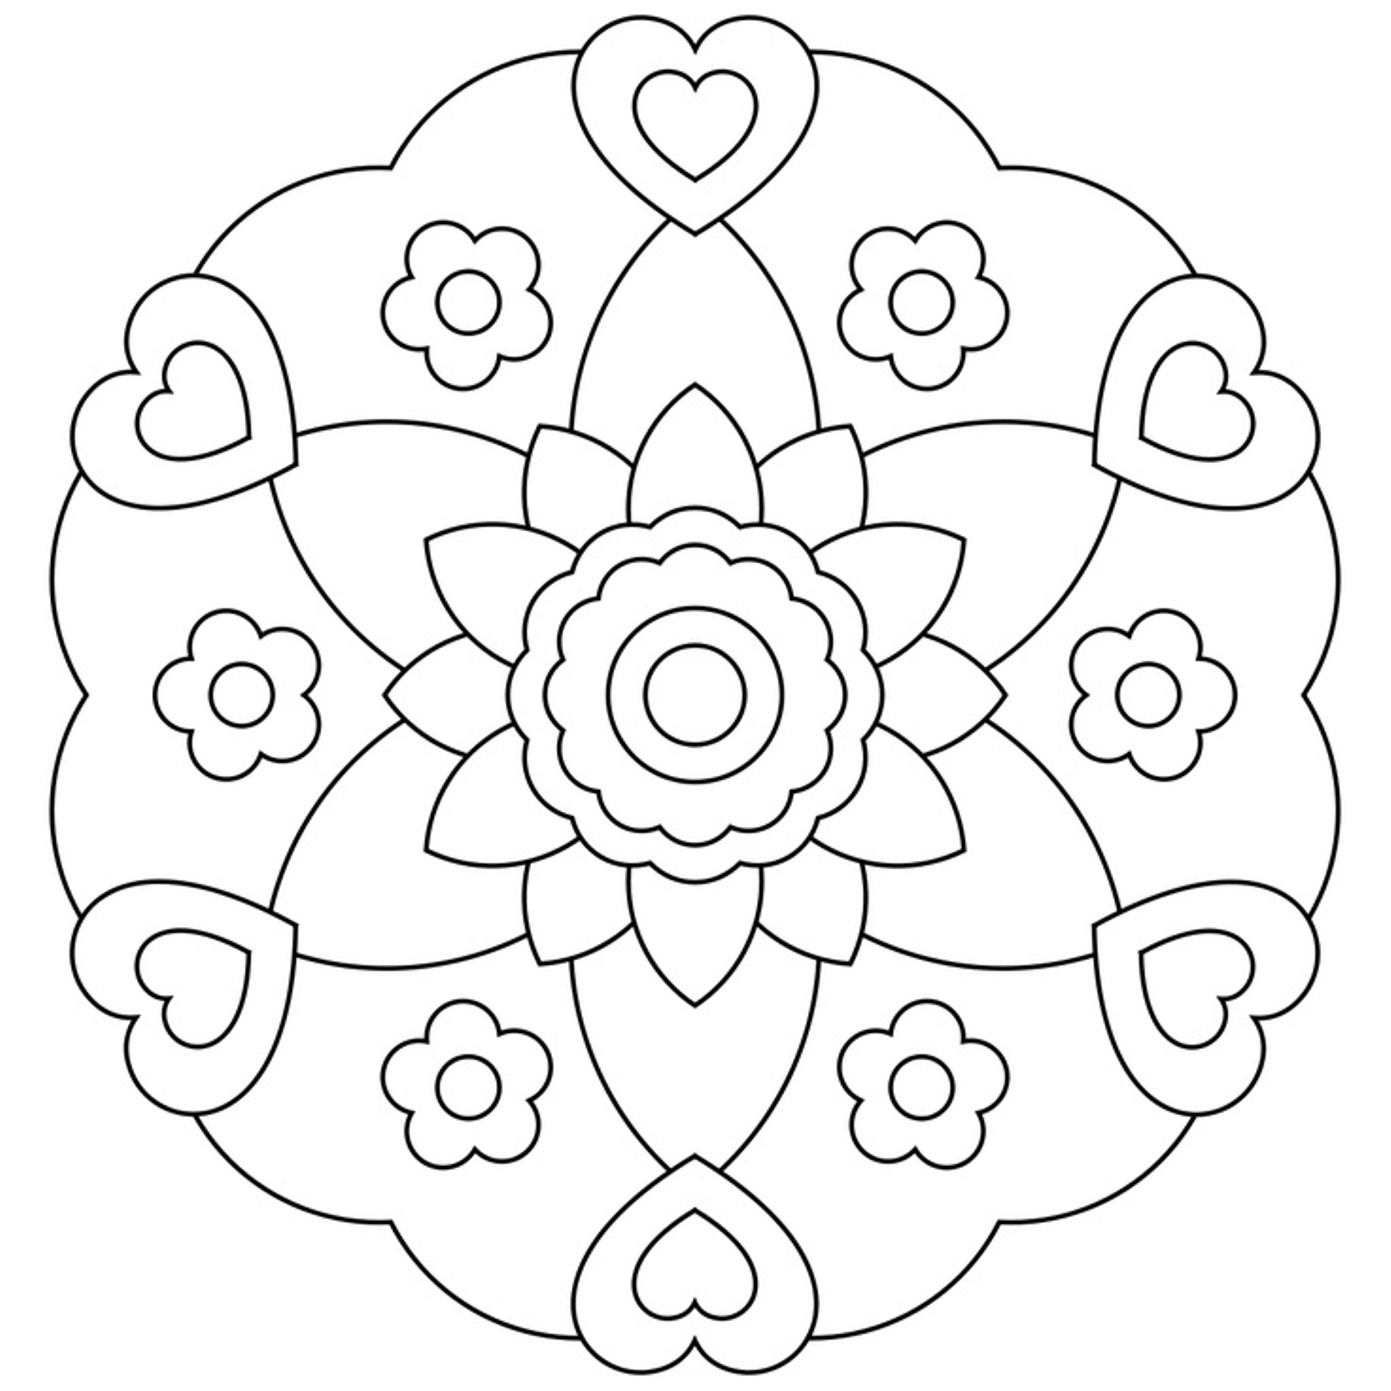 easy flower coloring pages large flower coloring page at getcoloringscom free easy flower pages coloring